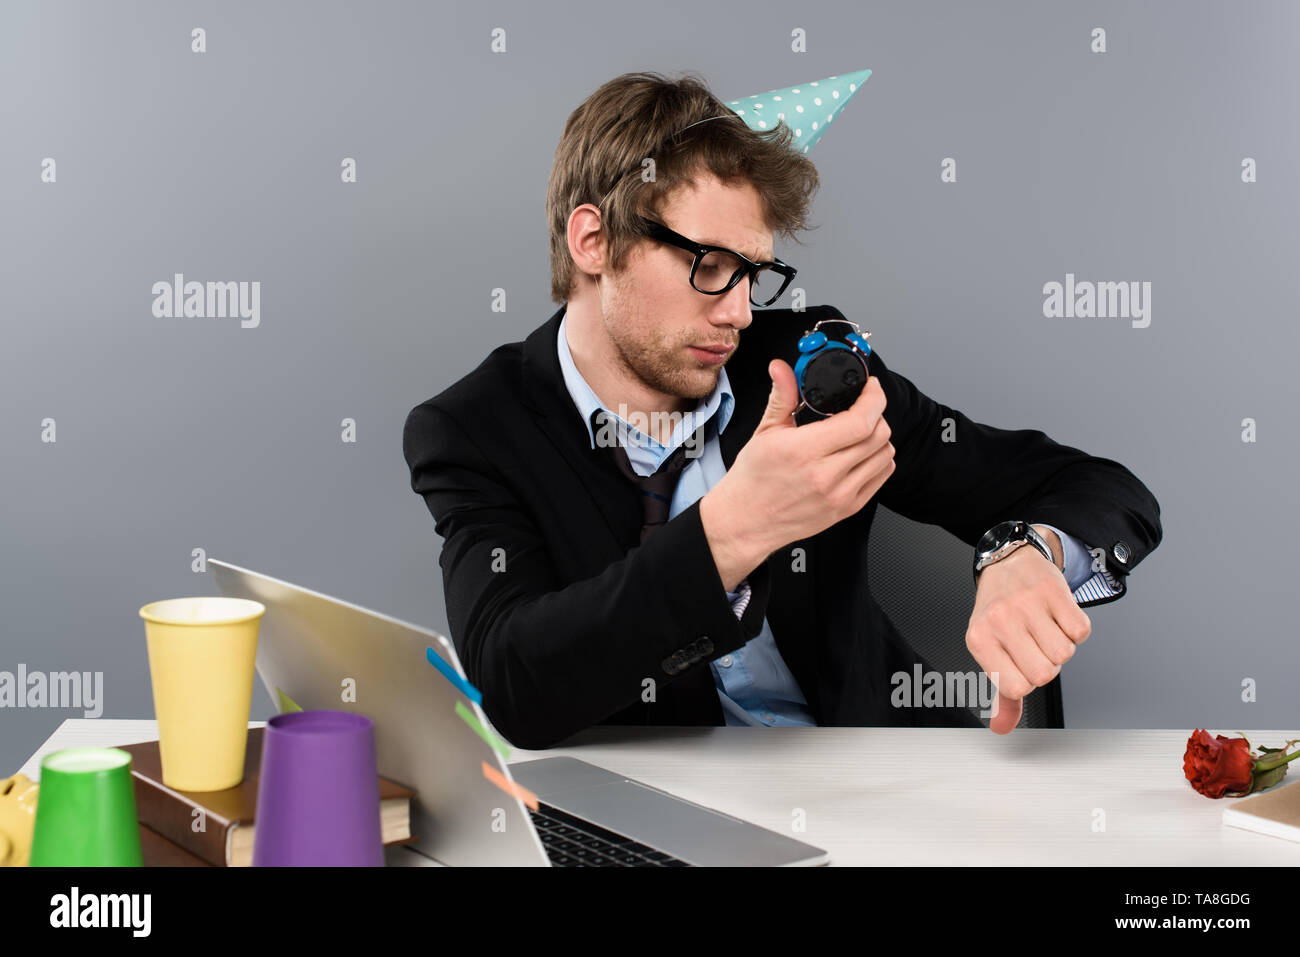 drunk businessman in party cap holding alarm clock and looking at watch isolated on grey - Stock Image